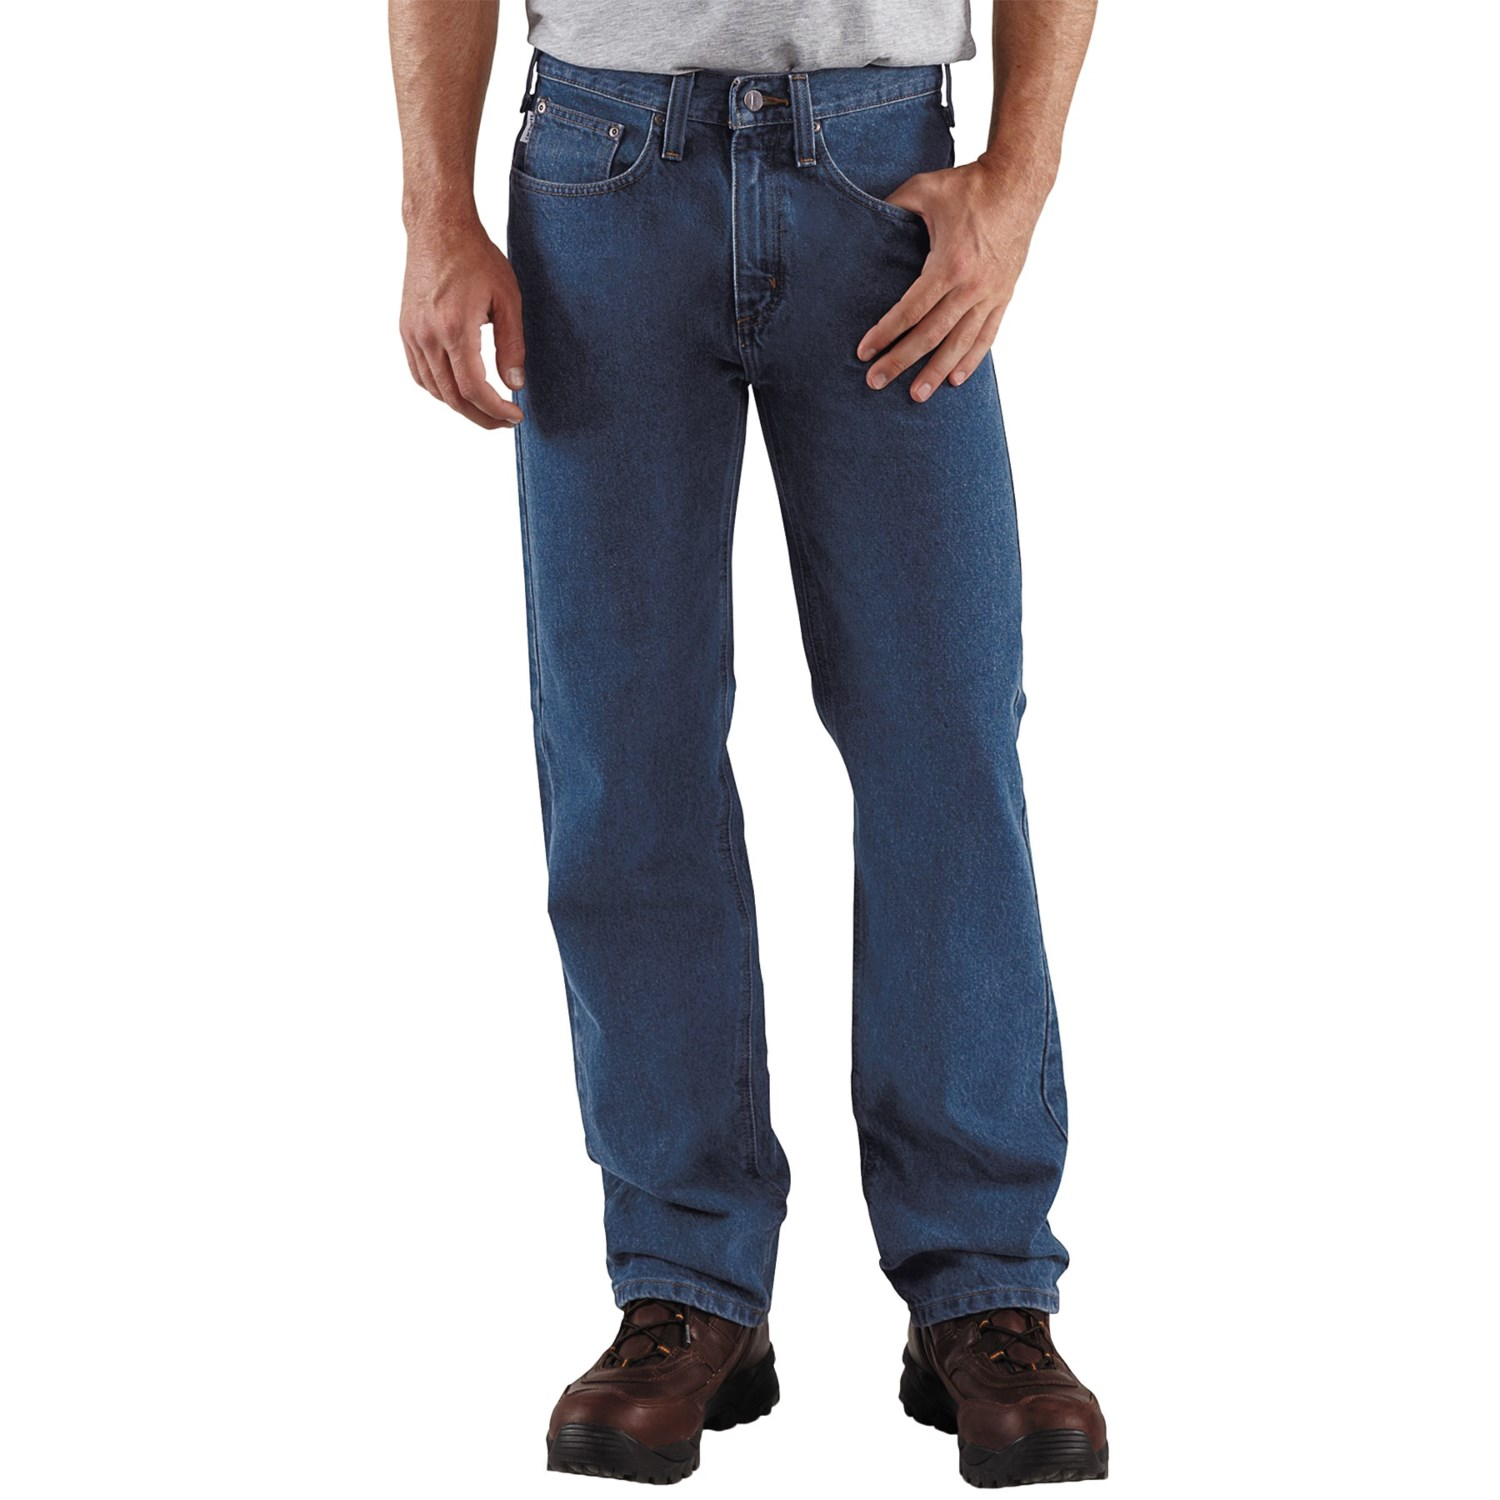 carhartt relaxed fit work jeans for men